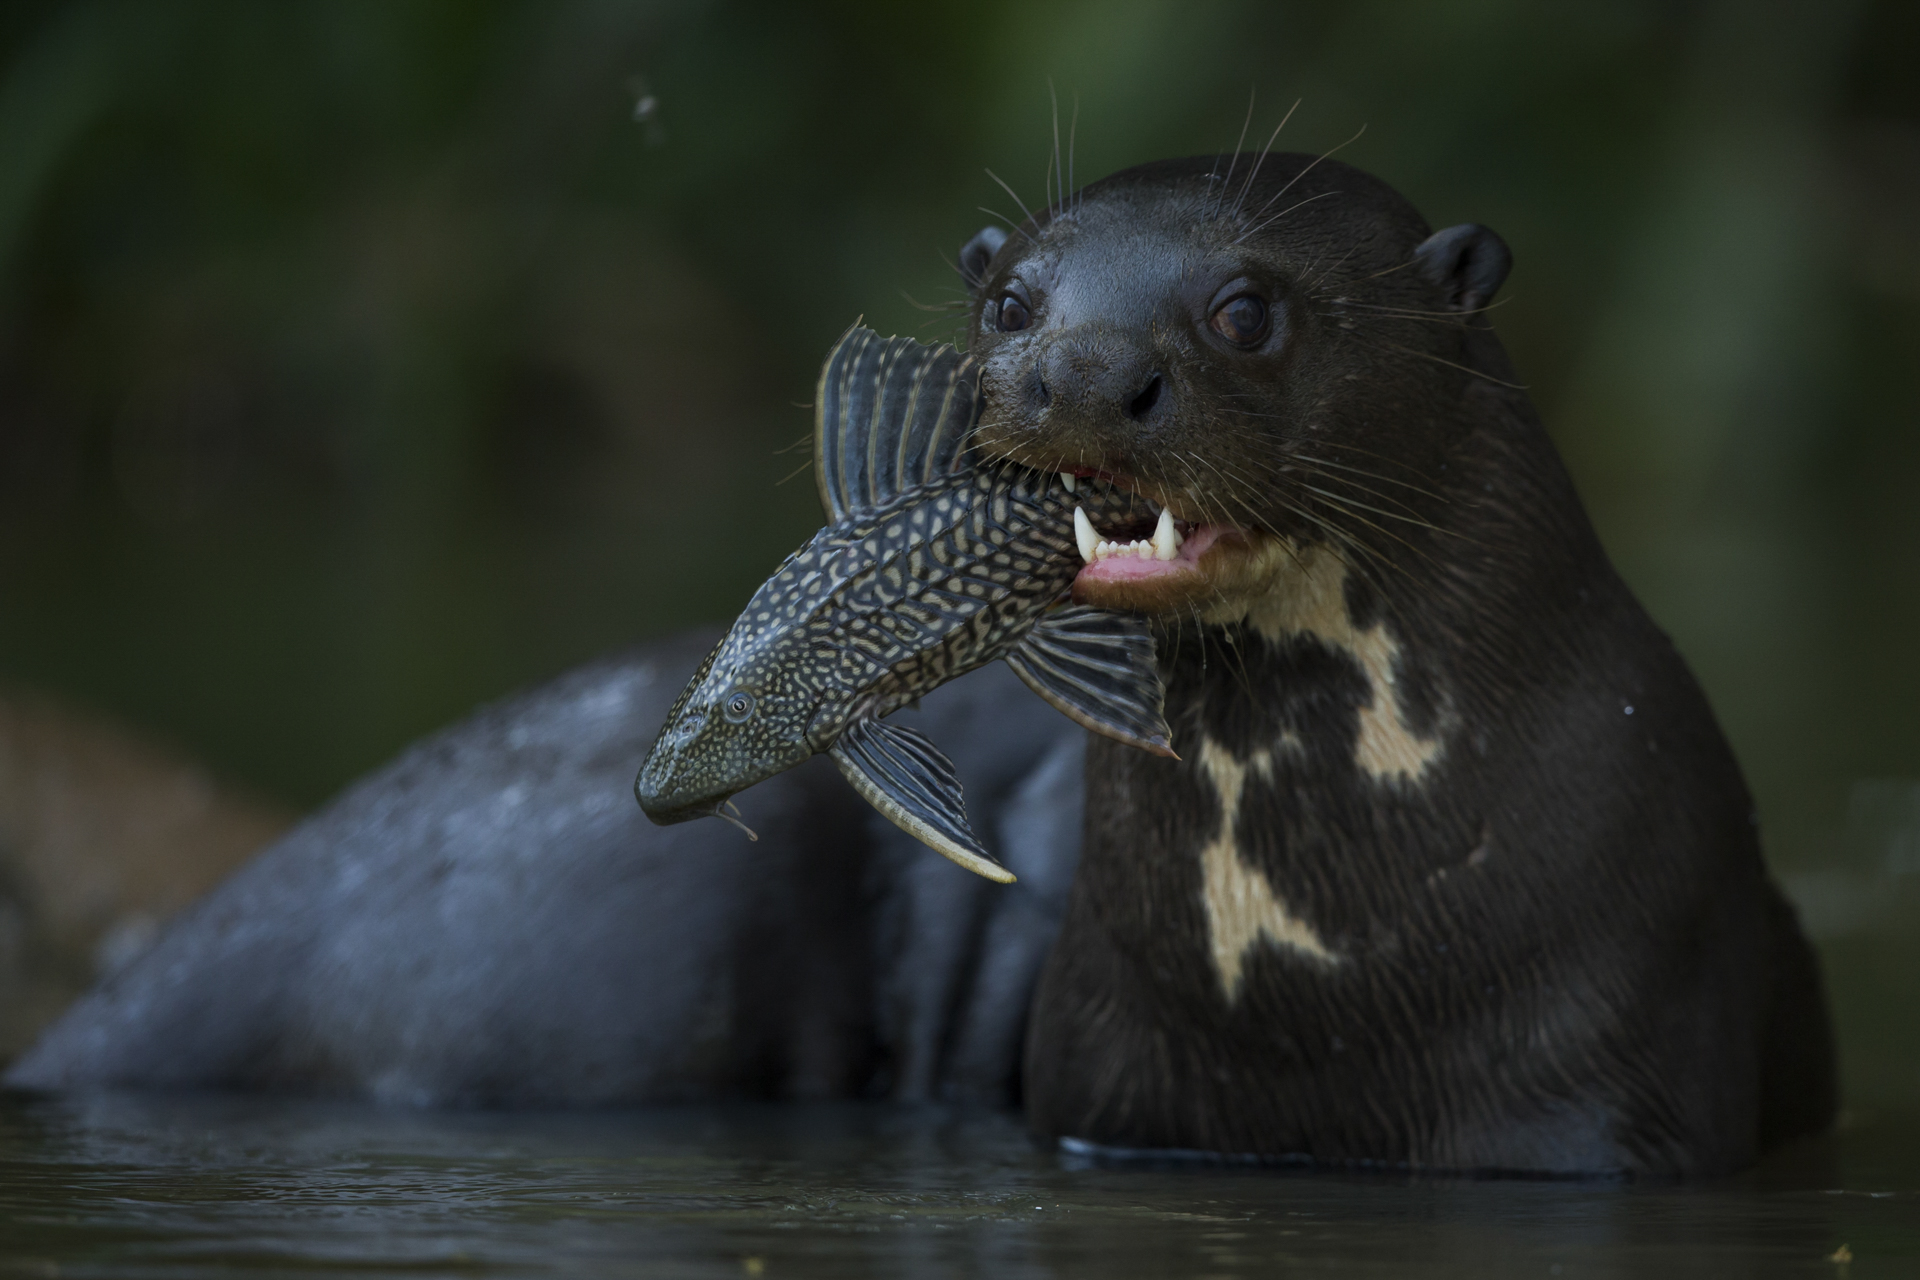 A giant river otter with a plecostomus.